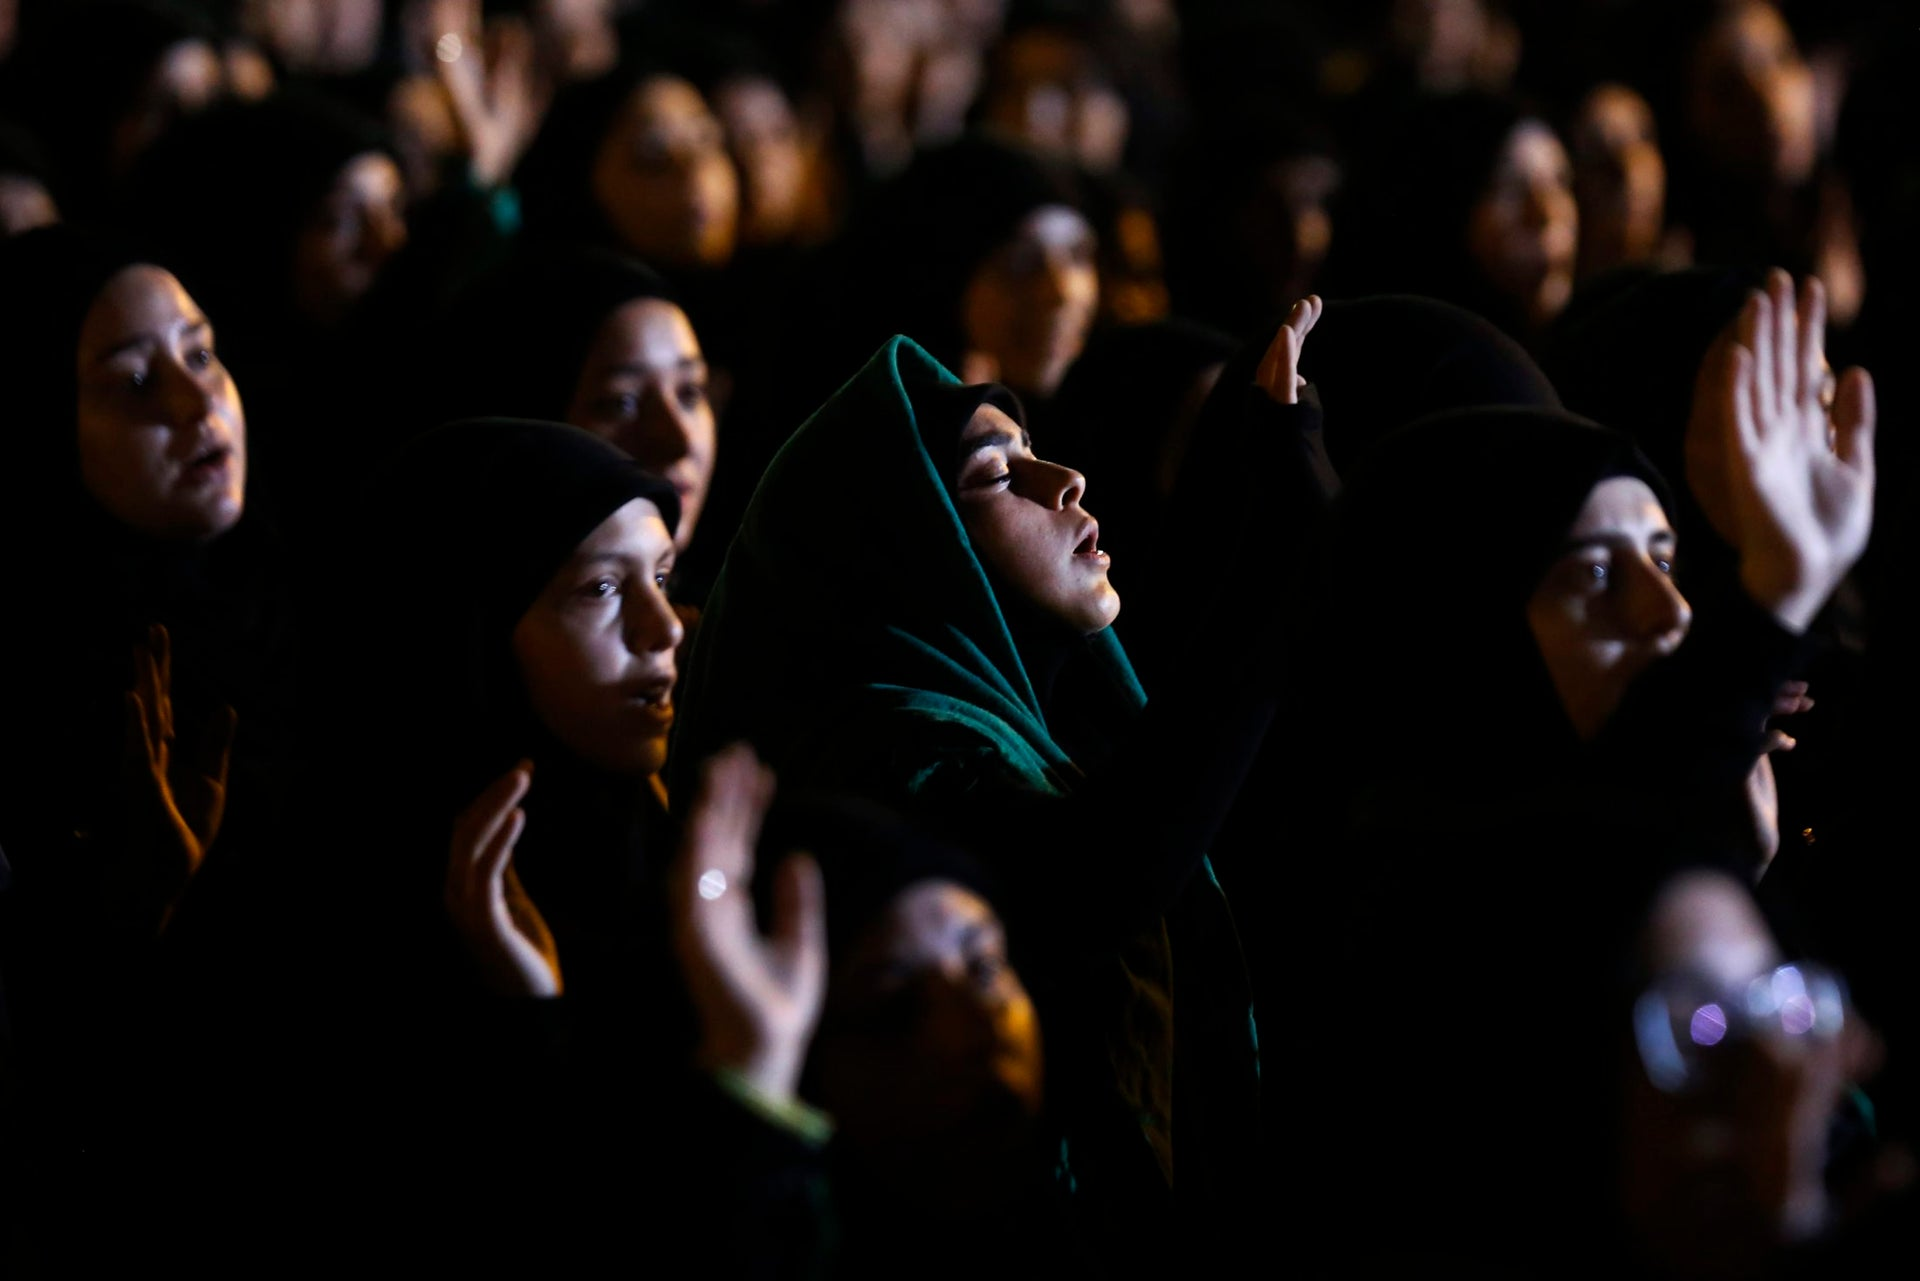 Hezbollah supporters listen to the story of Imam Hussein during activities to mark the ninth of Ashura, a 10-day ritual commemorating the death of Imam Hussein, in a southern suburb of Beirut, Lebanon, Saturday, Sept. 30, 2017.